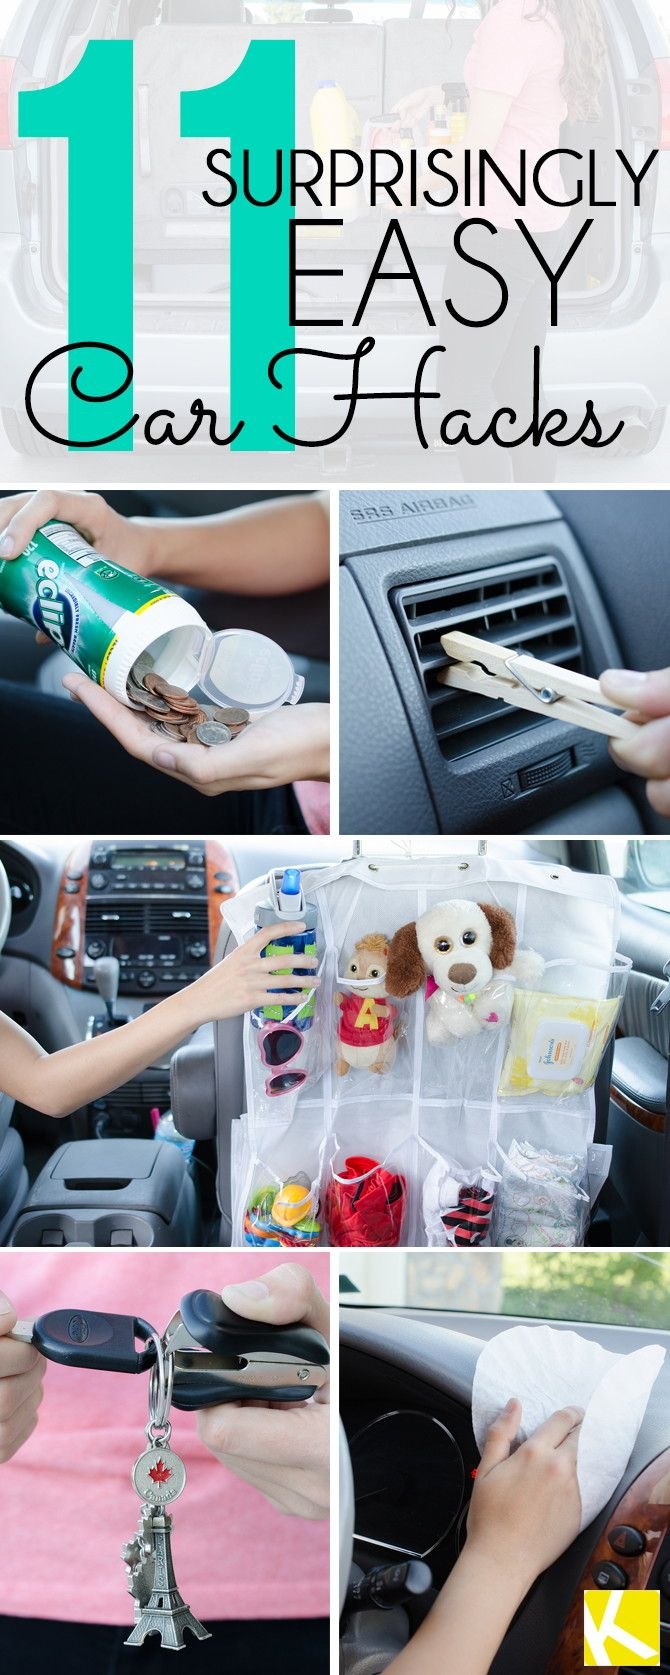 11 Amazing Hacks to Keep Your Car Clean and Organized - The Krazy Coupon Lady